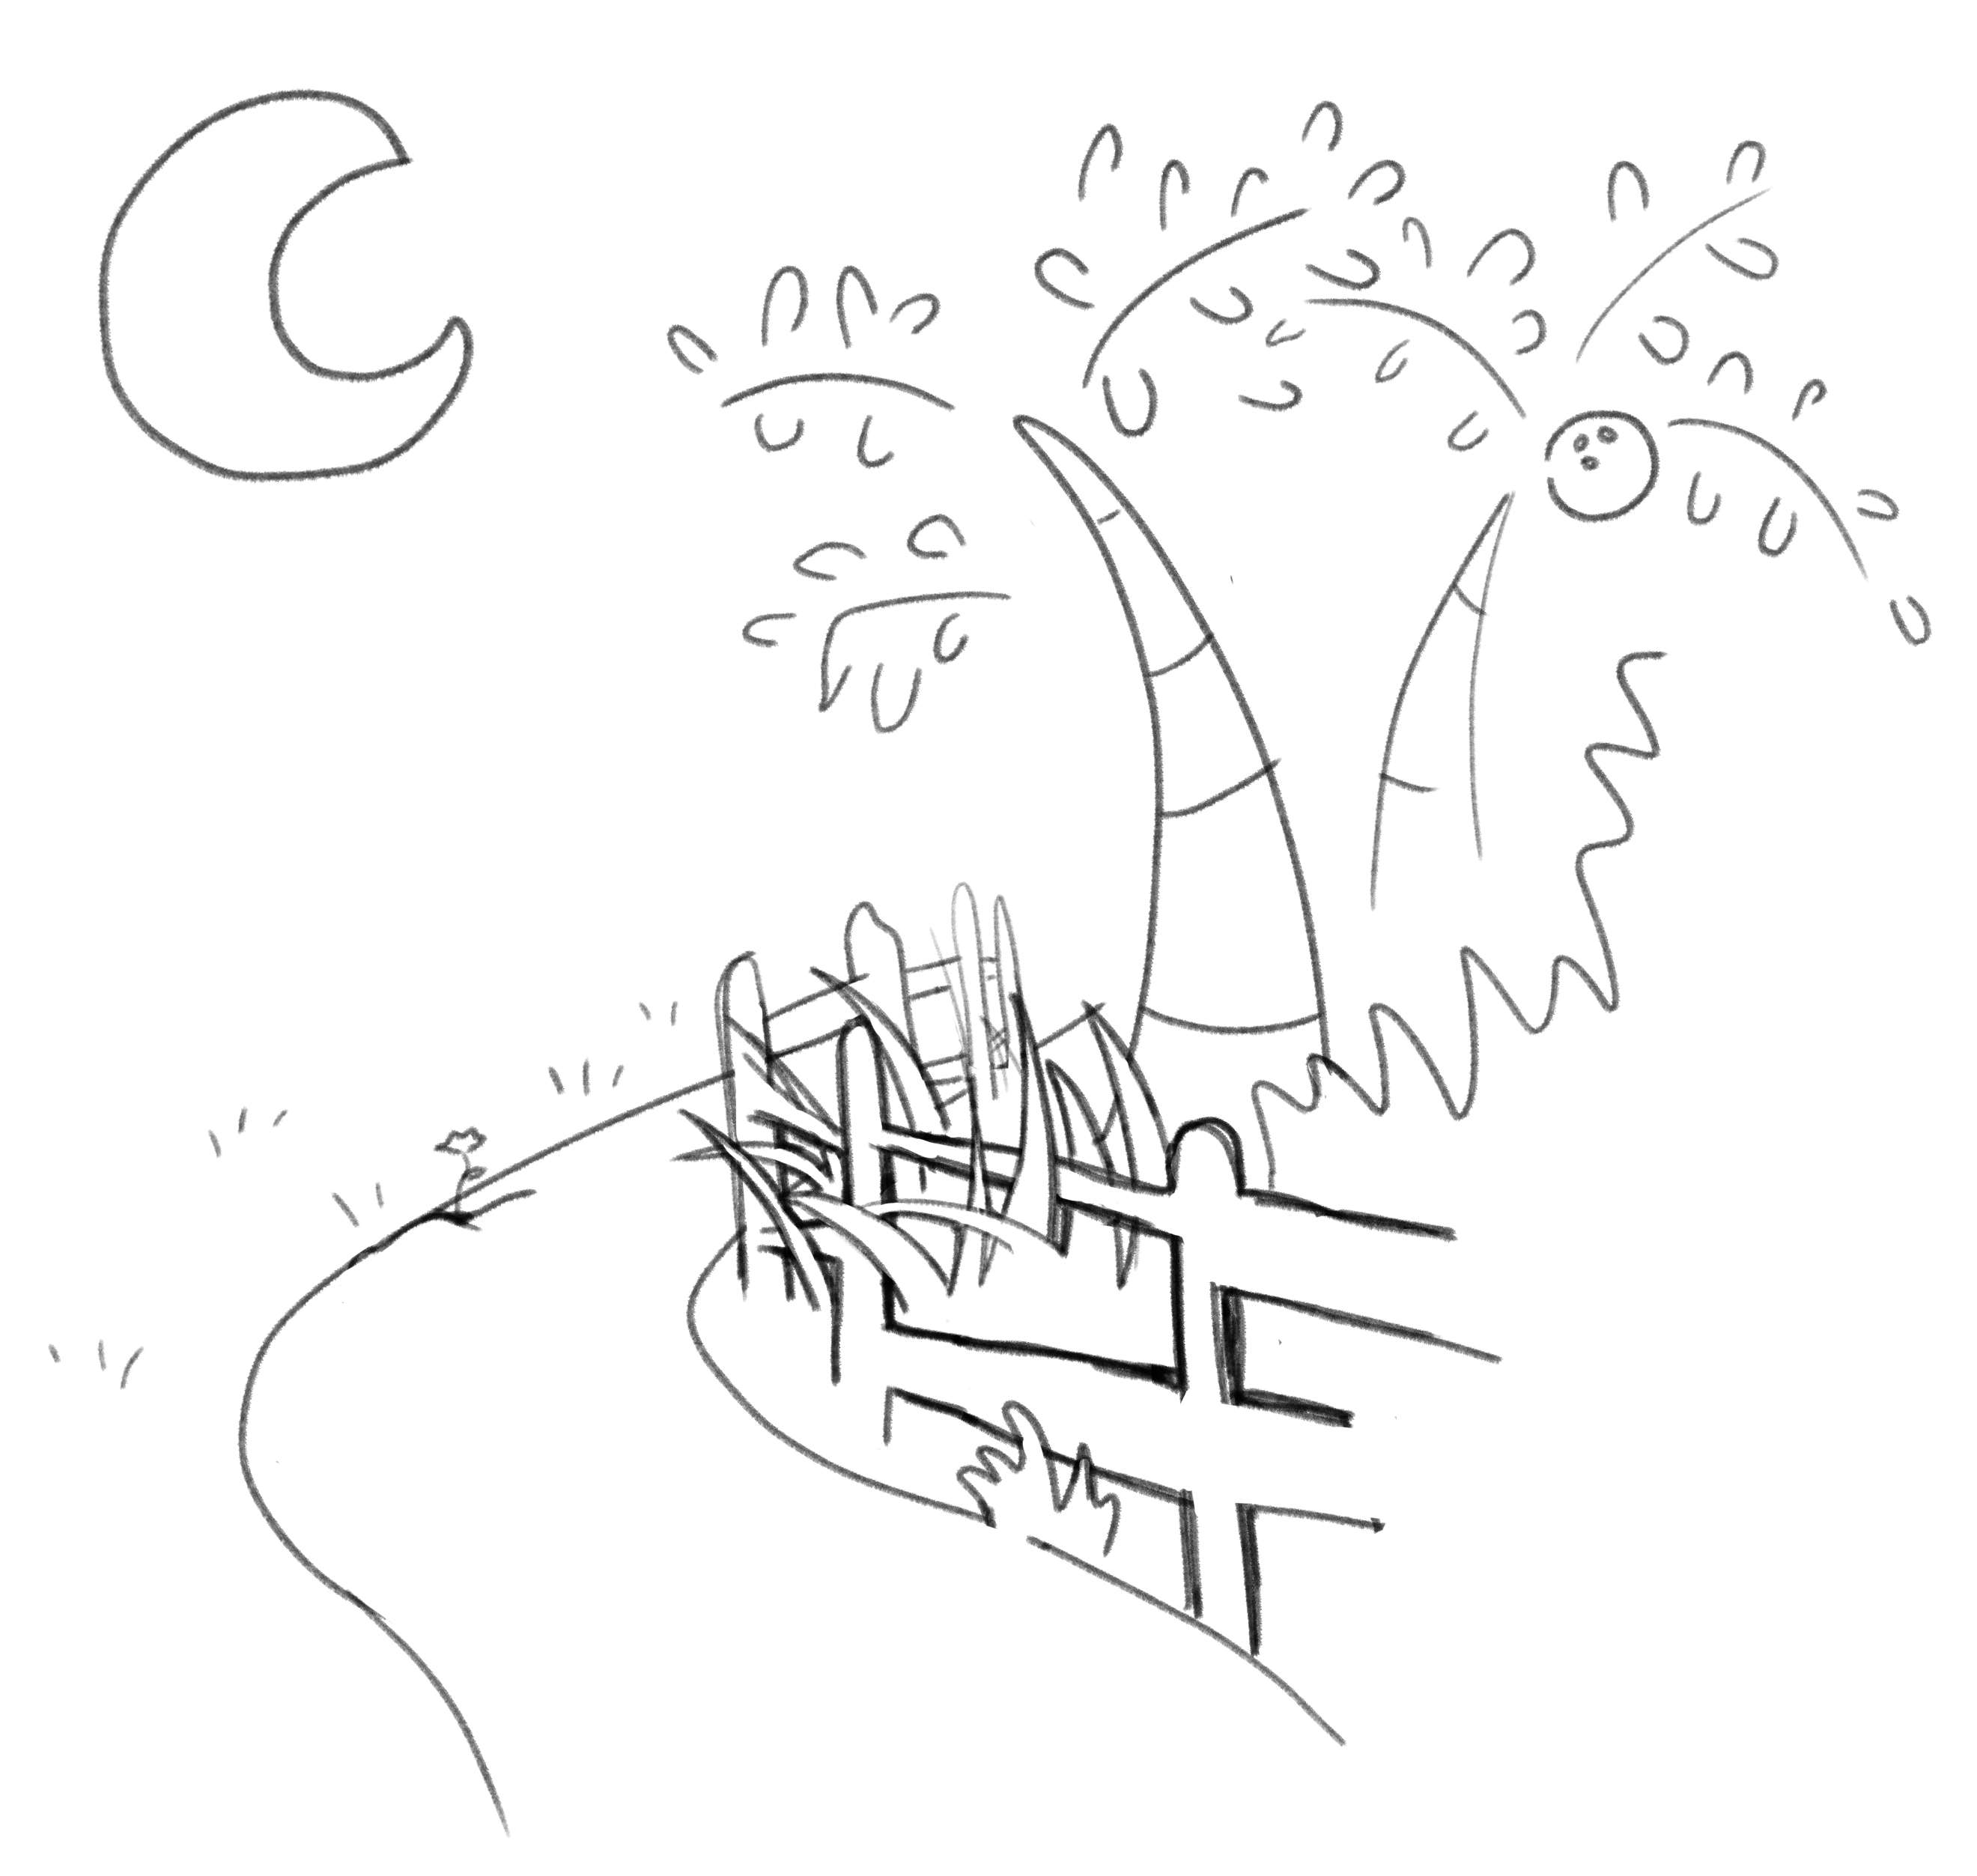 a drawing of the path we took walks on